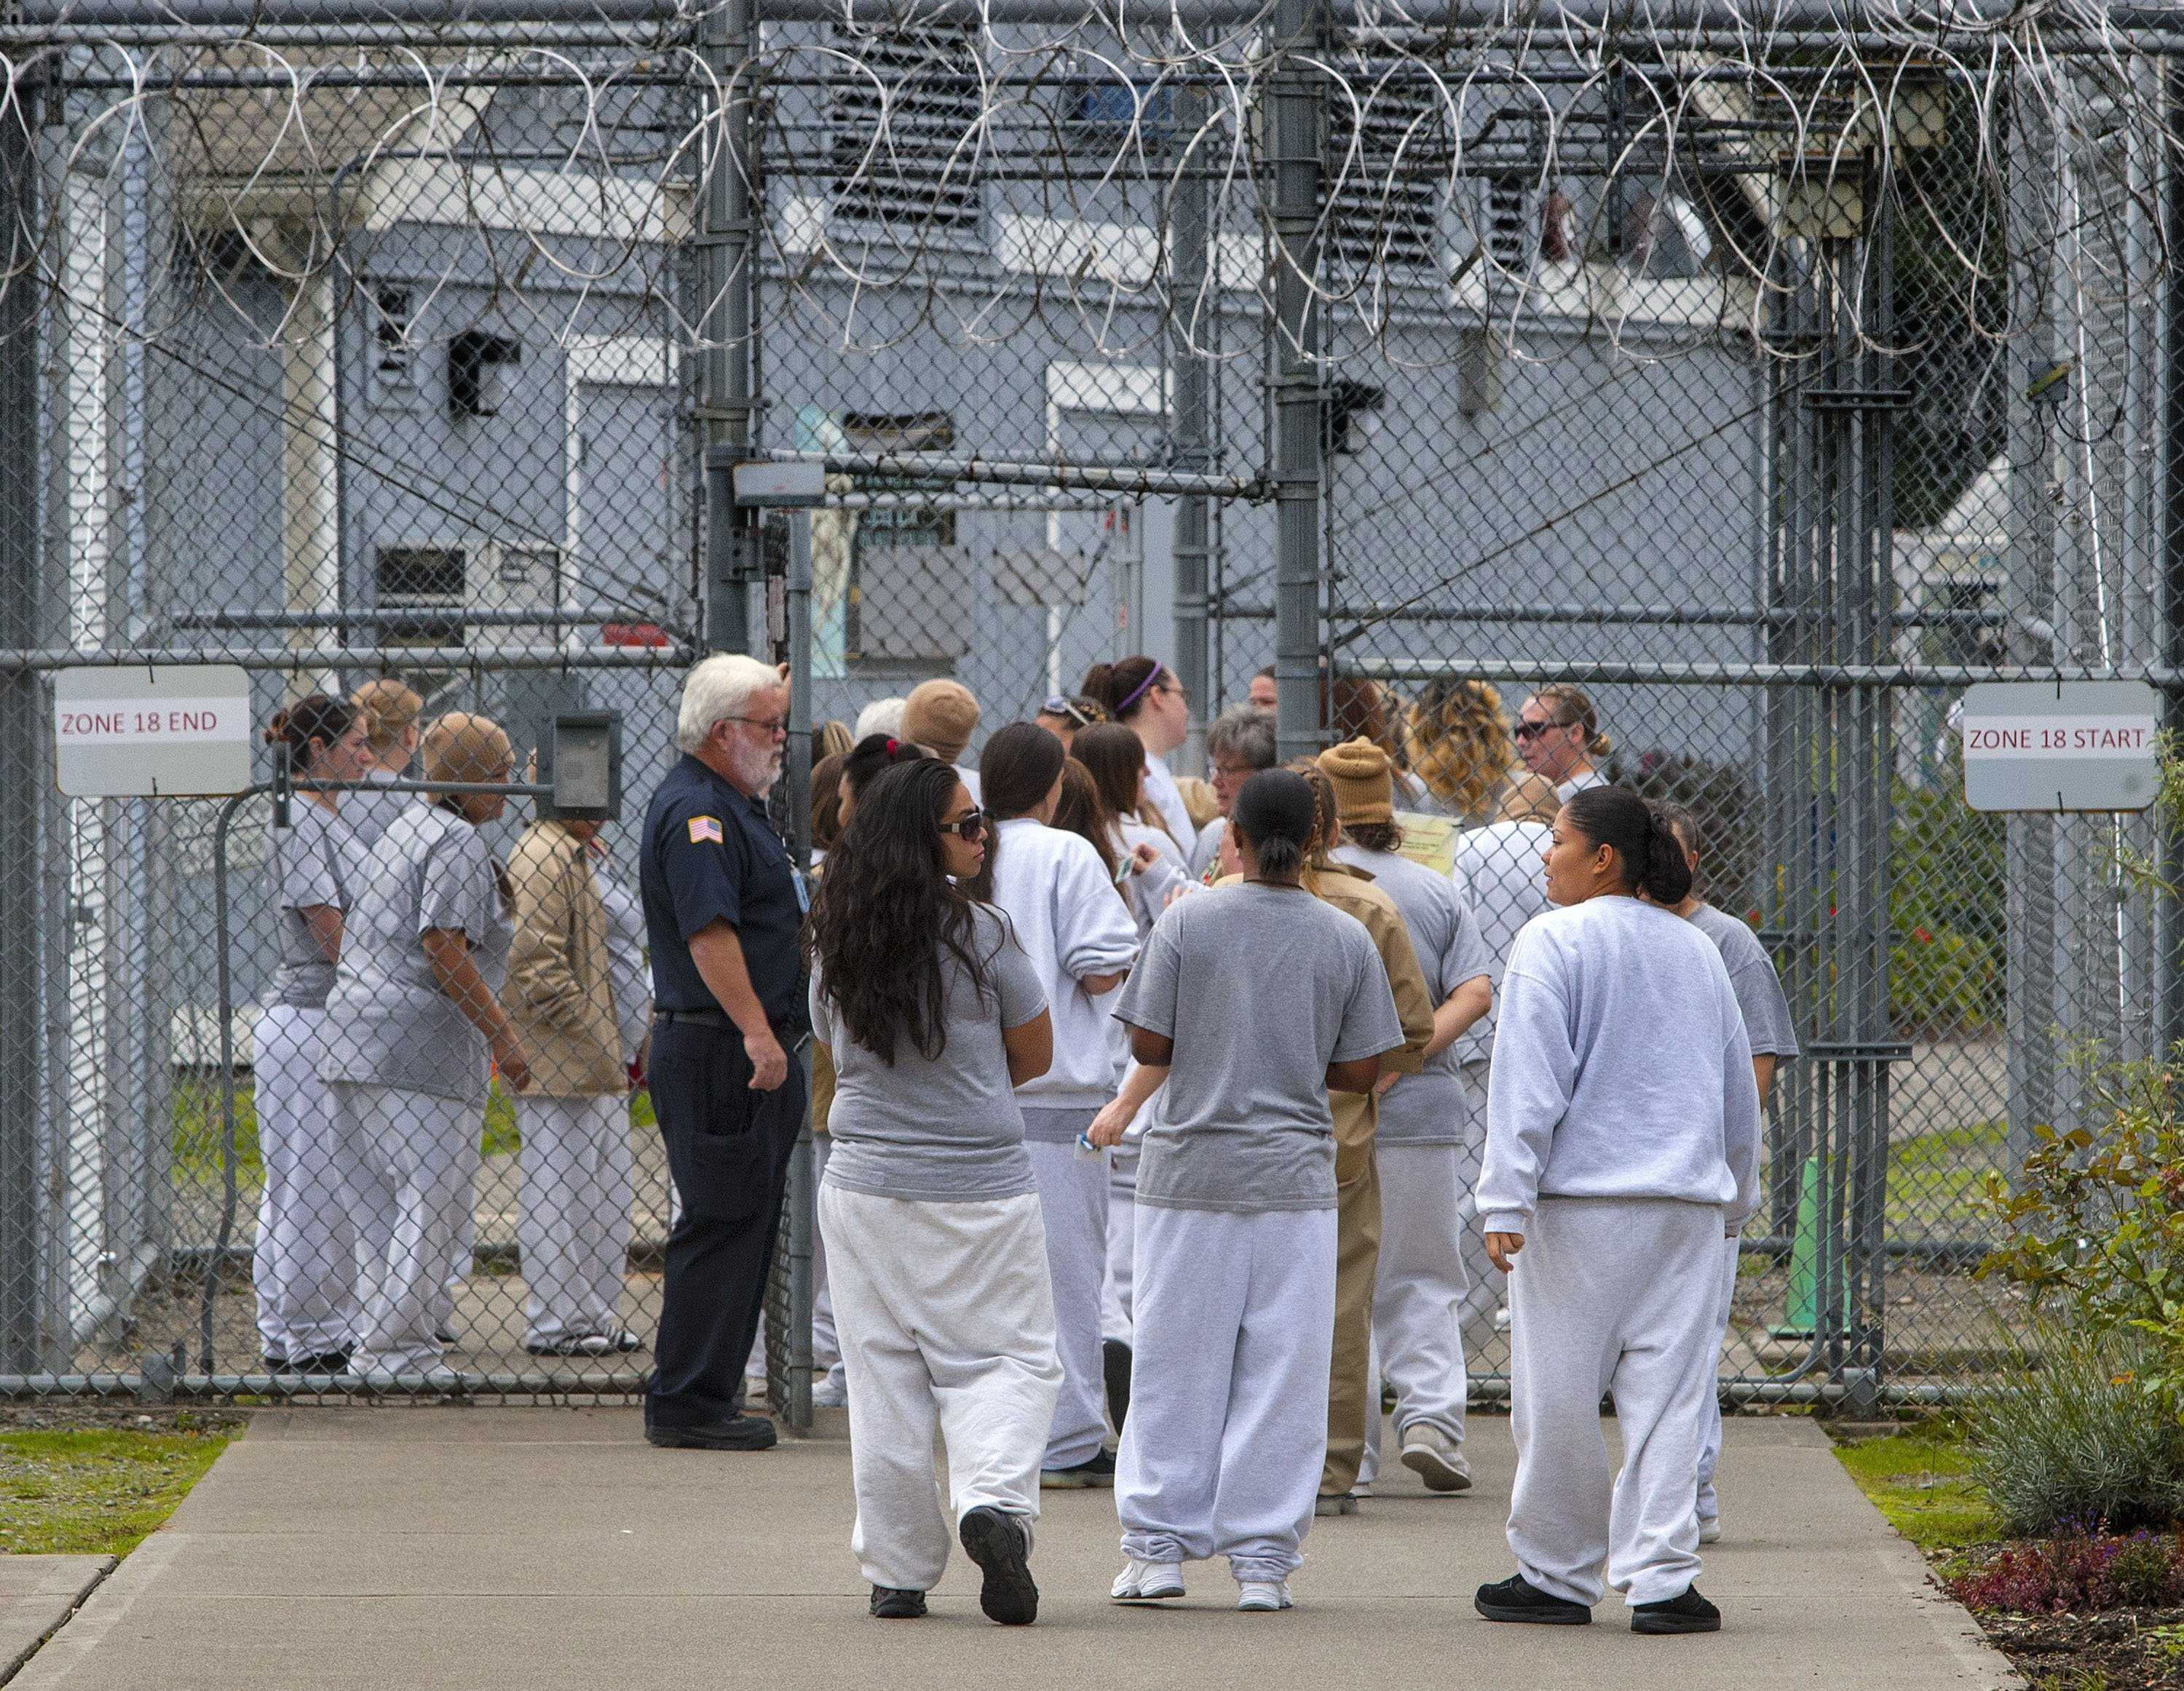 Prison detainees shown